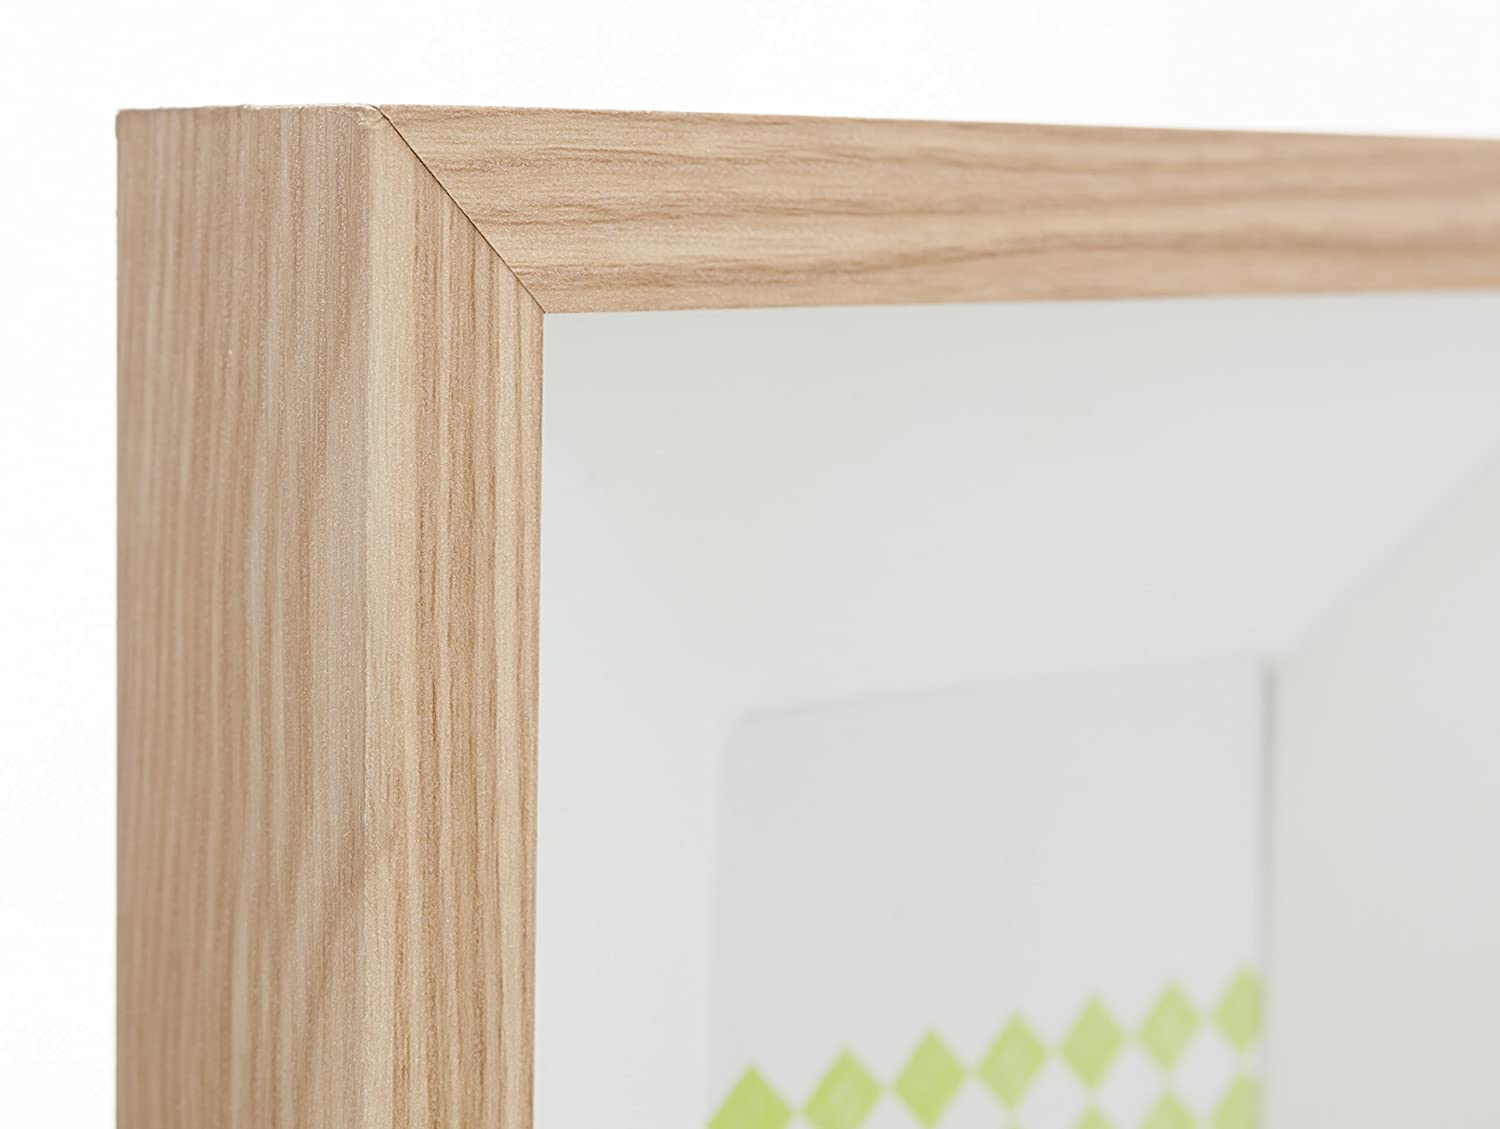 Kiera Grace Oak Finish with White Mat 4 X 6 Collage Photo Frame with 3 Openings